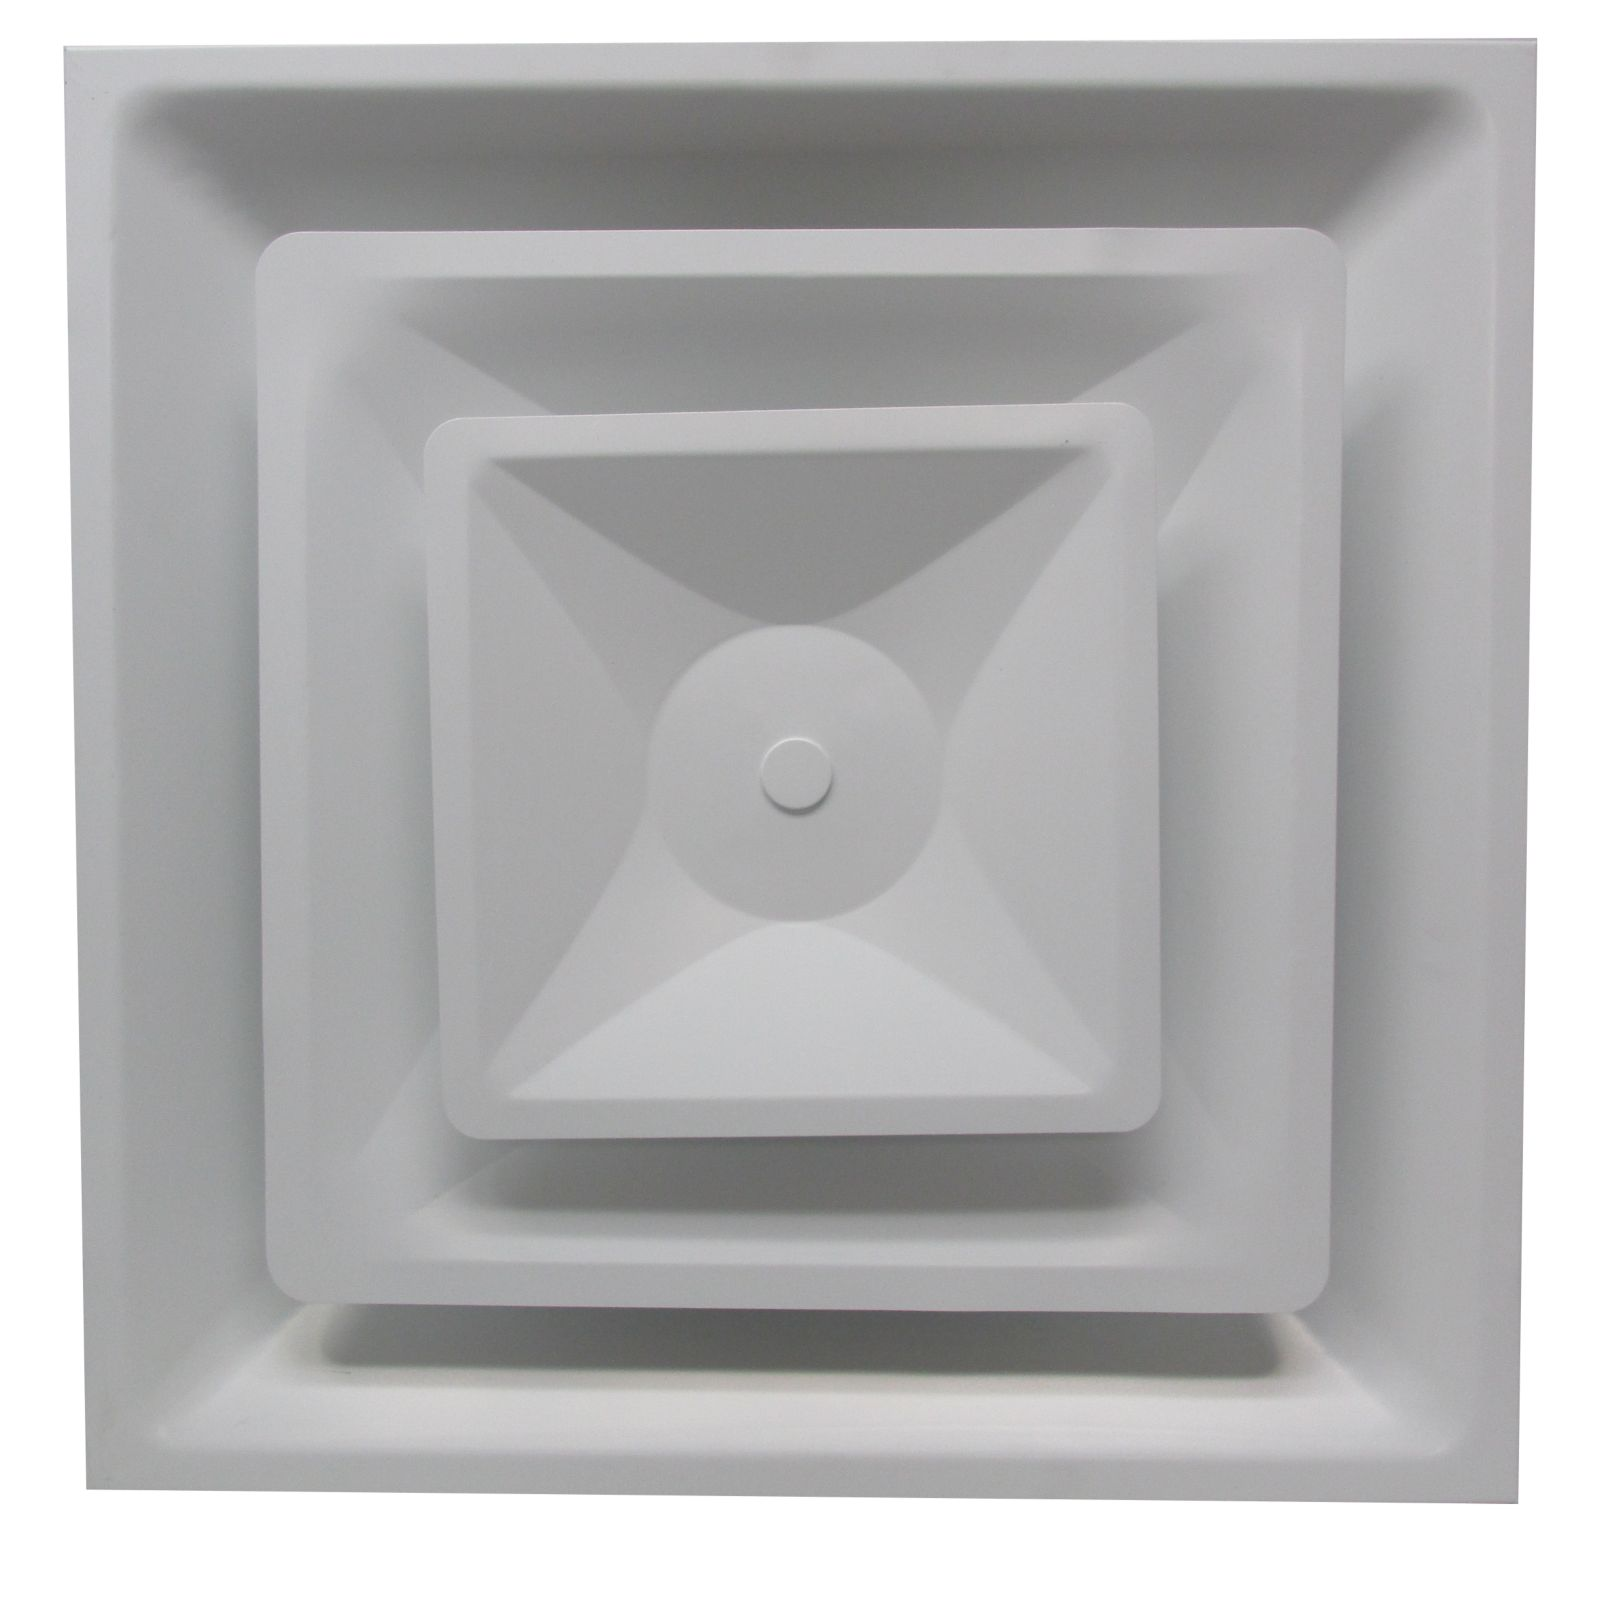 airmate diffuser products square three way ceiling series